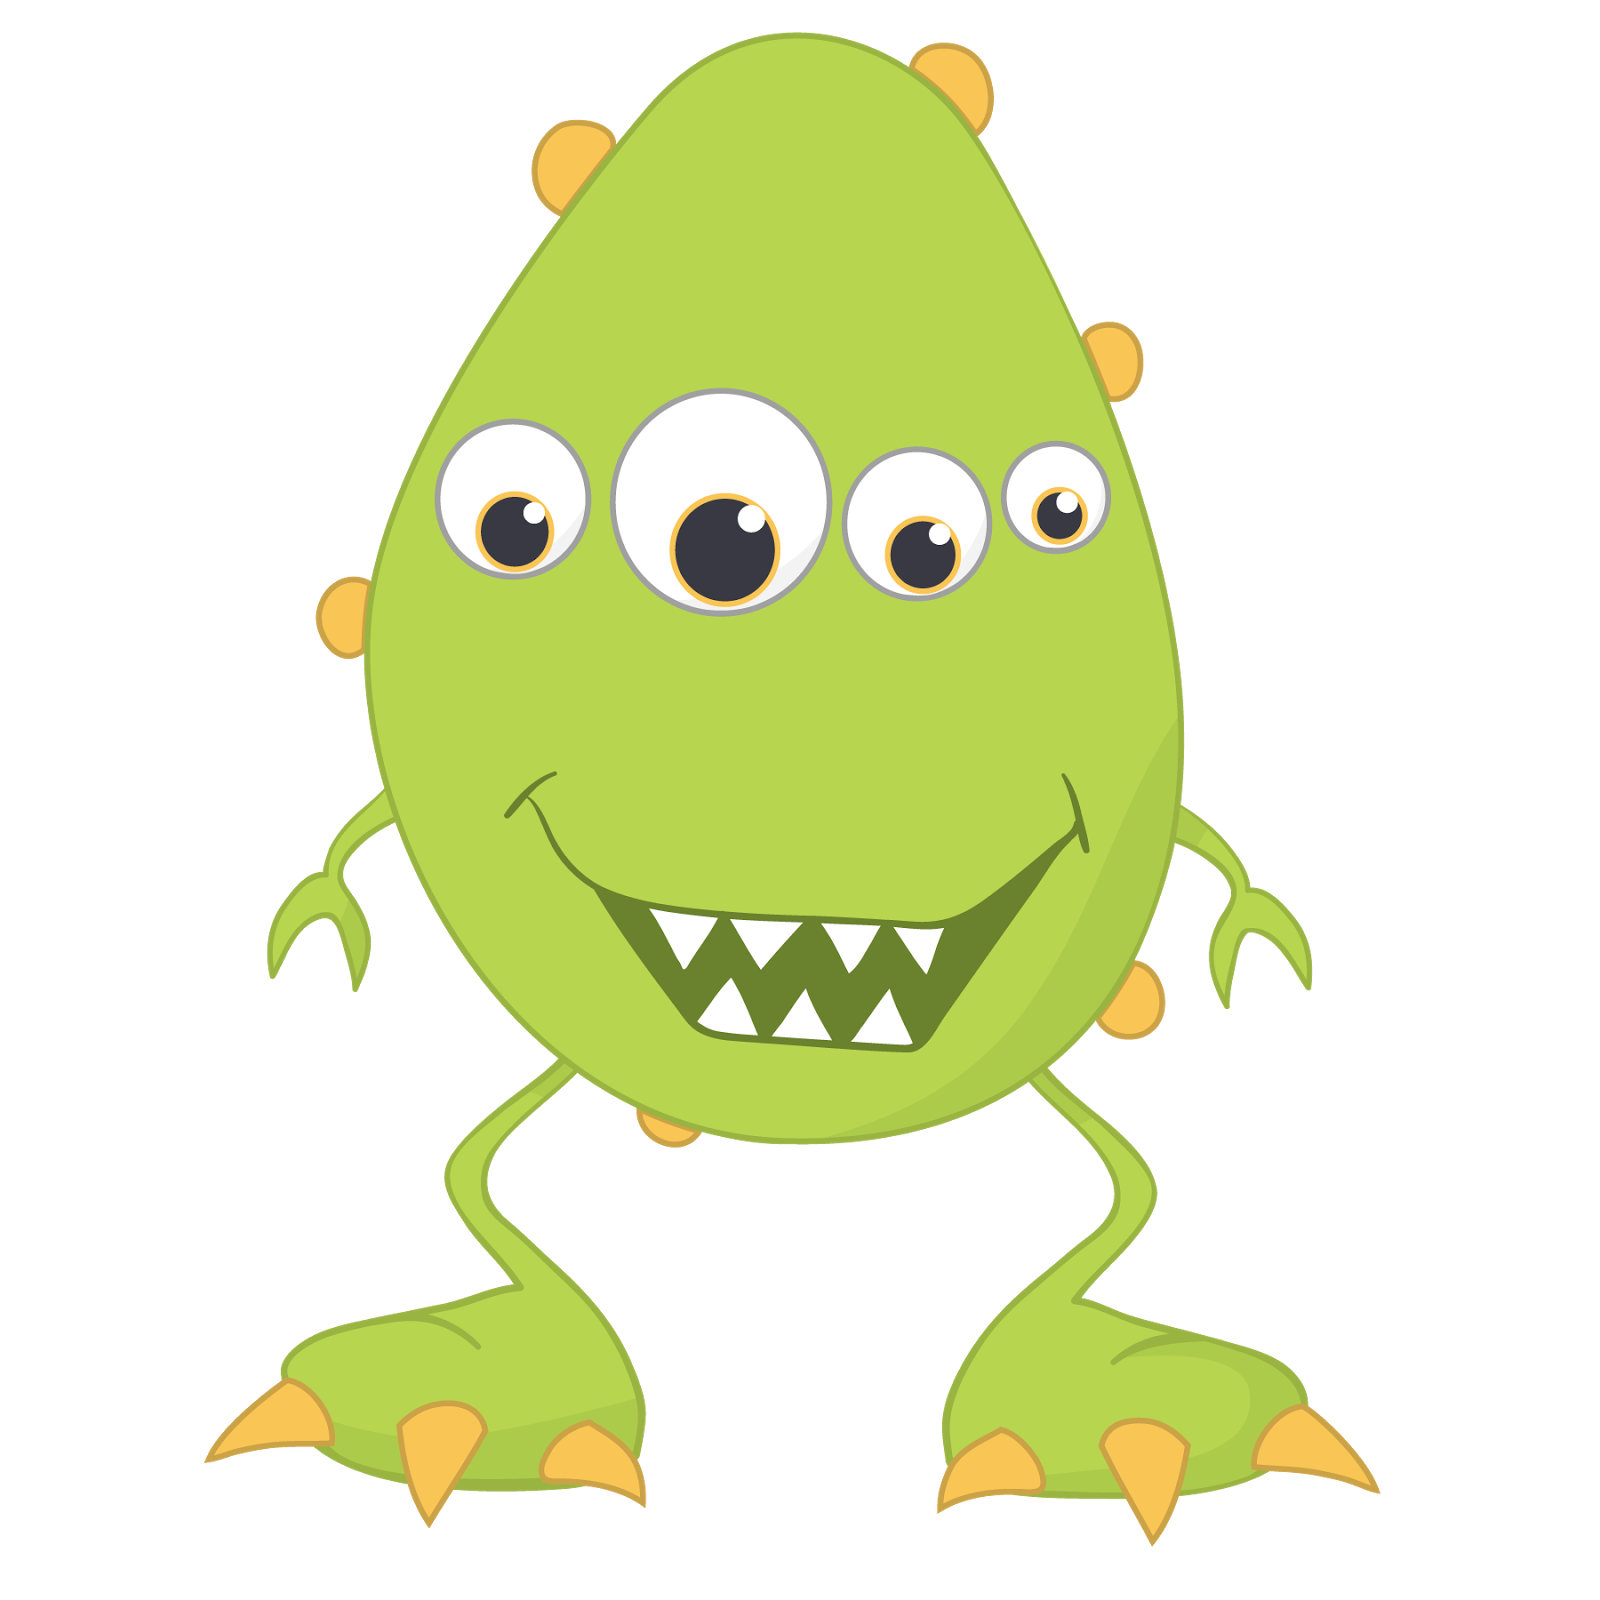 School monster clipart clipart royalty free library Class Dojo Clipart - Free Clip Art - Clipart Bay clipart royalty free library